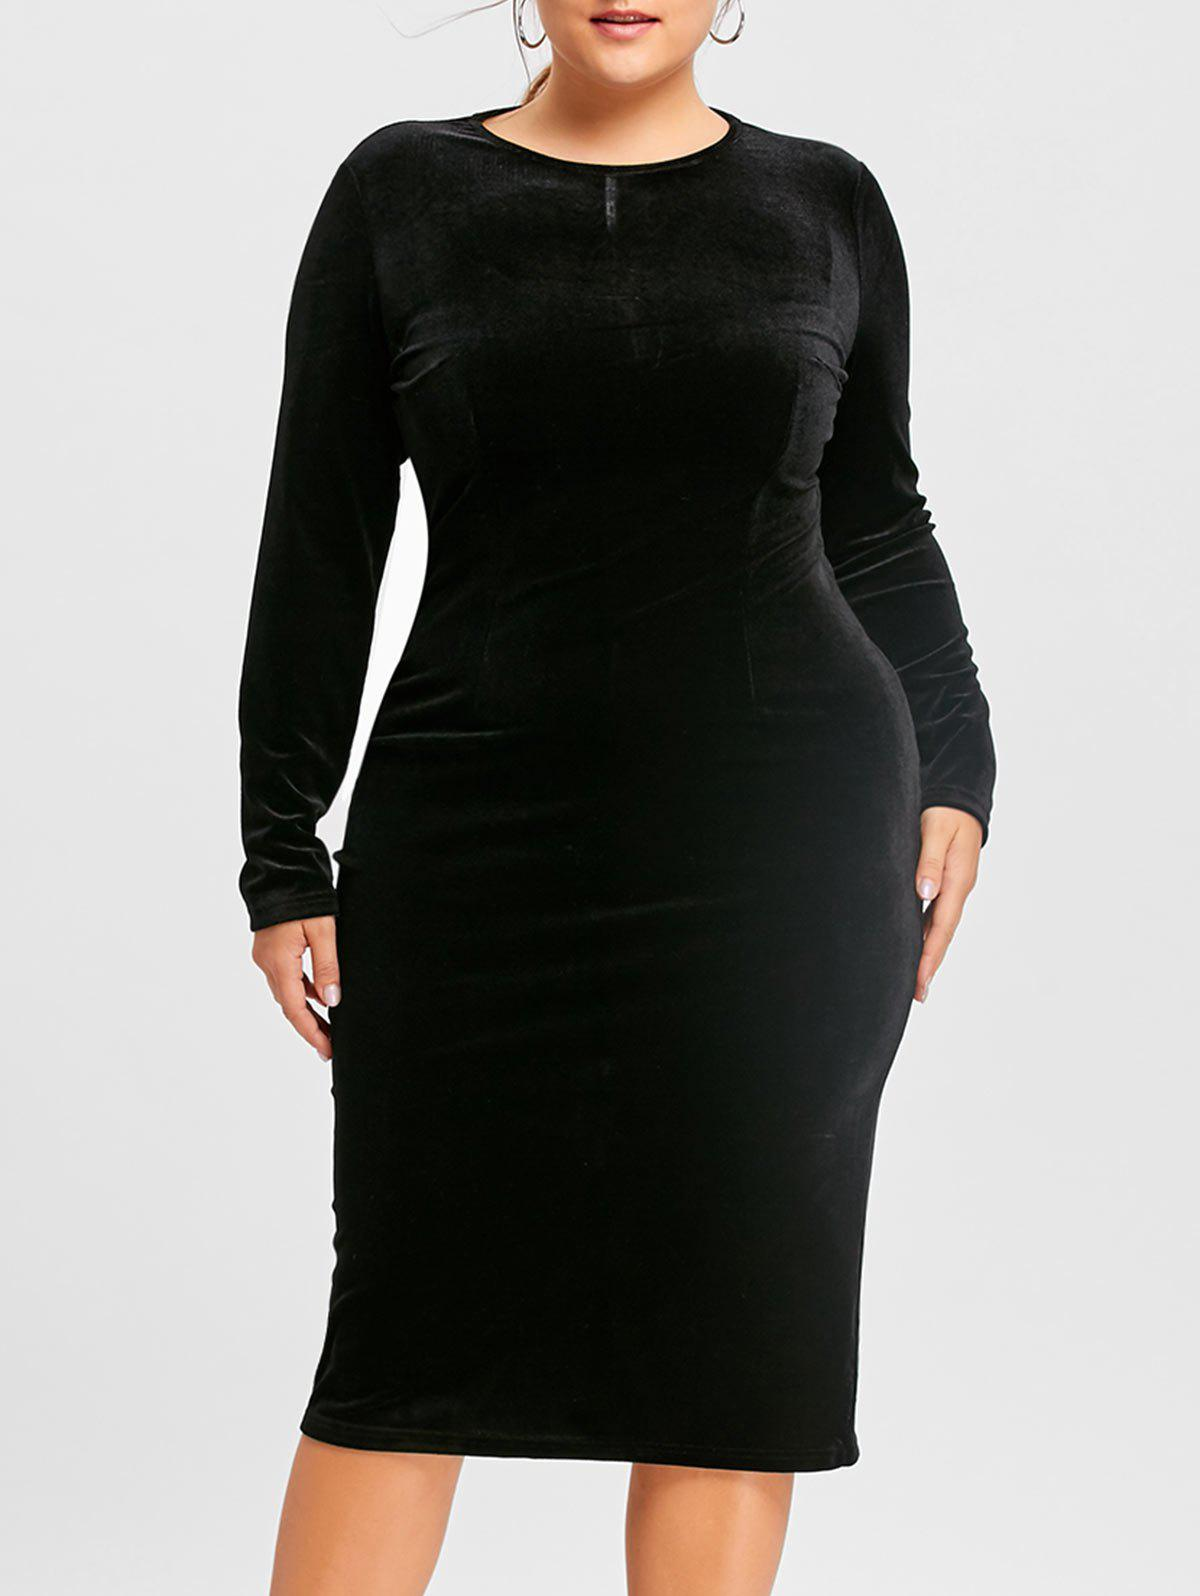 Velvet Long Sleeve Plus Size DressWOMEN<br><br>Size: 6XL; Color: BLACK; Style: Casual; Material: Polyester; Silhouette: Bodycon; Dresses Length: Mid-Calf; Neckline: Round Collar; Sleeve Length: Long Sleeves; Pattern Type: Solid Color; With Belt: No; Season: Fall,Spring; Weight: 0.4800kg; Package Contents: 1 x Dress;